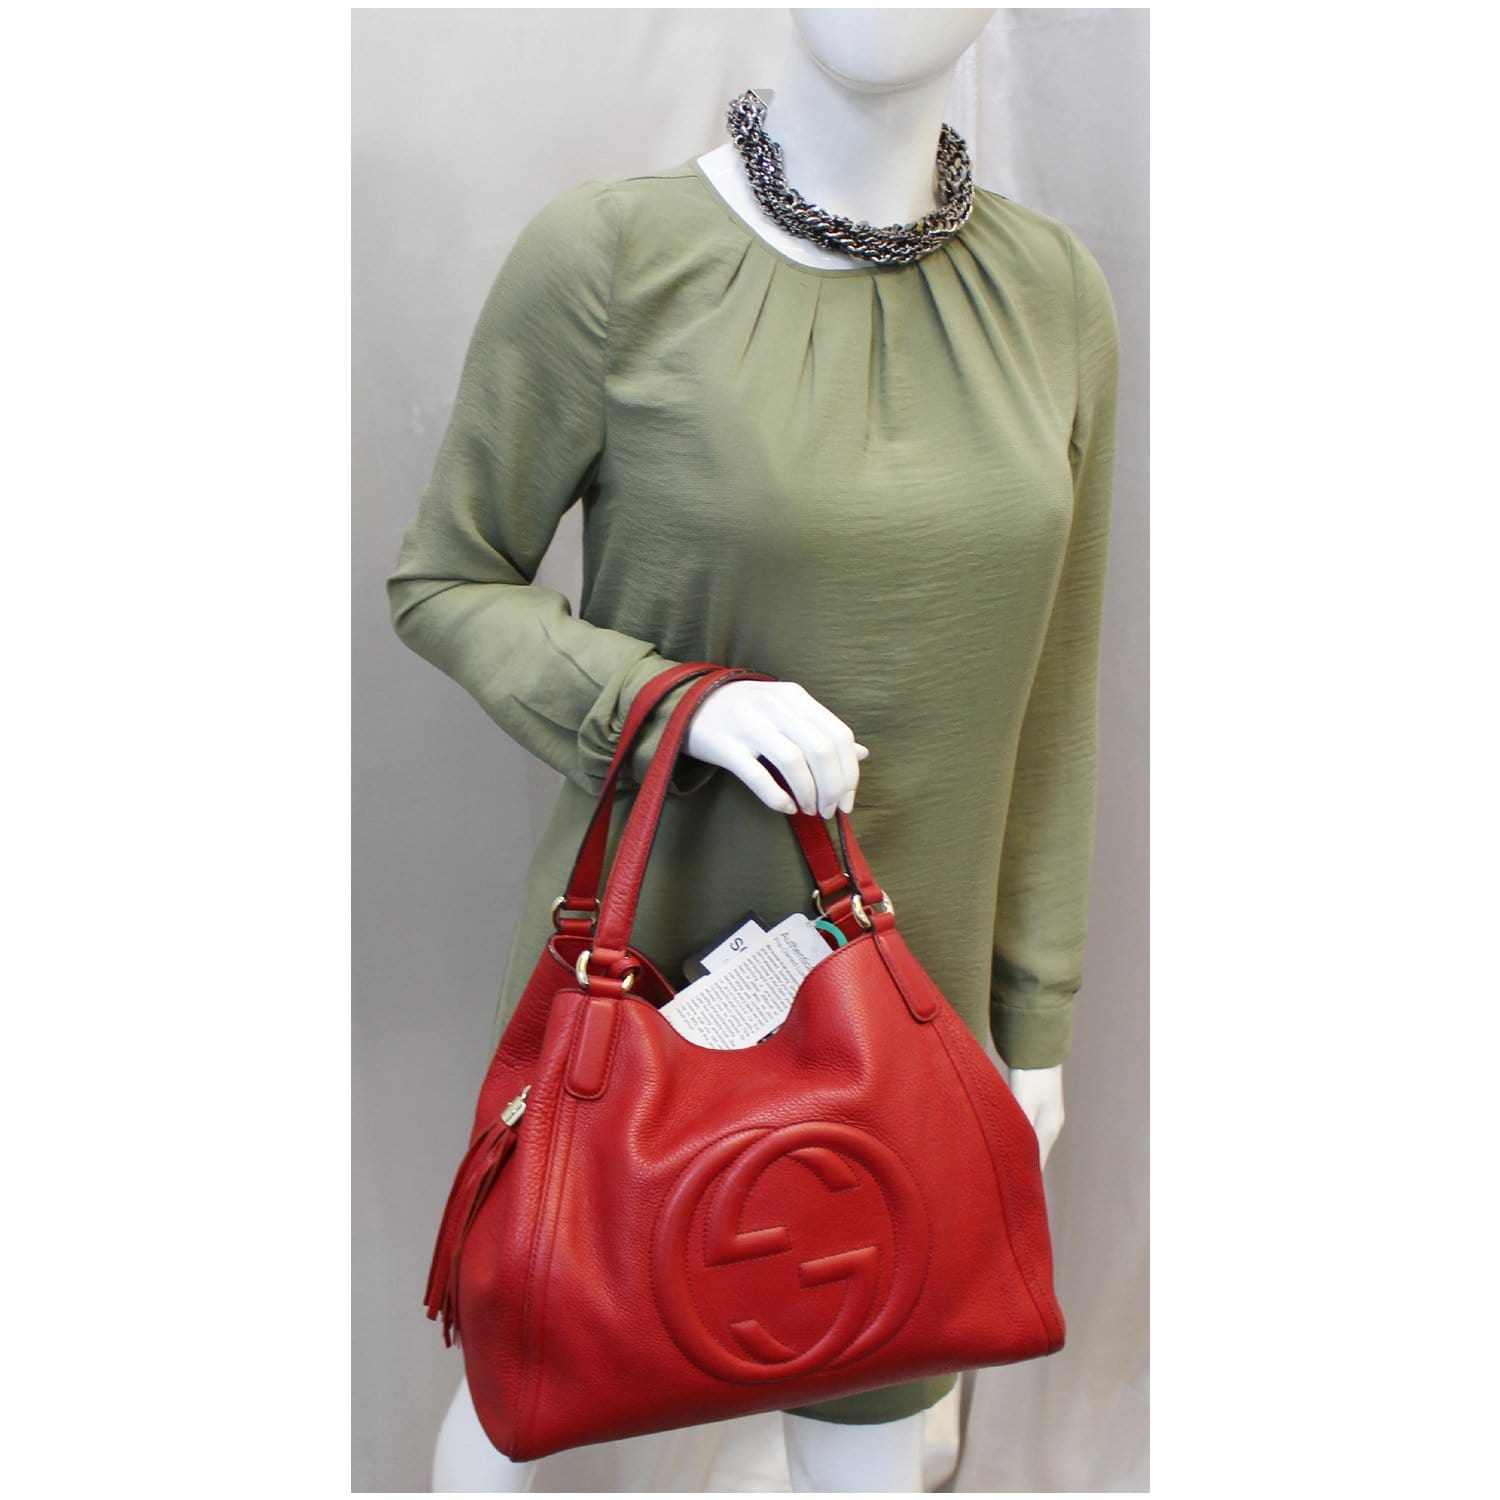 08e59d4038 GUCCI Soho Top Handle Pebbled Leather Tote Bag Red-US